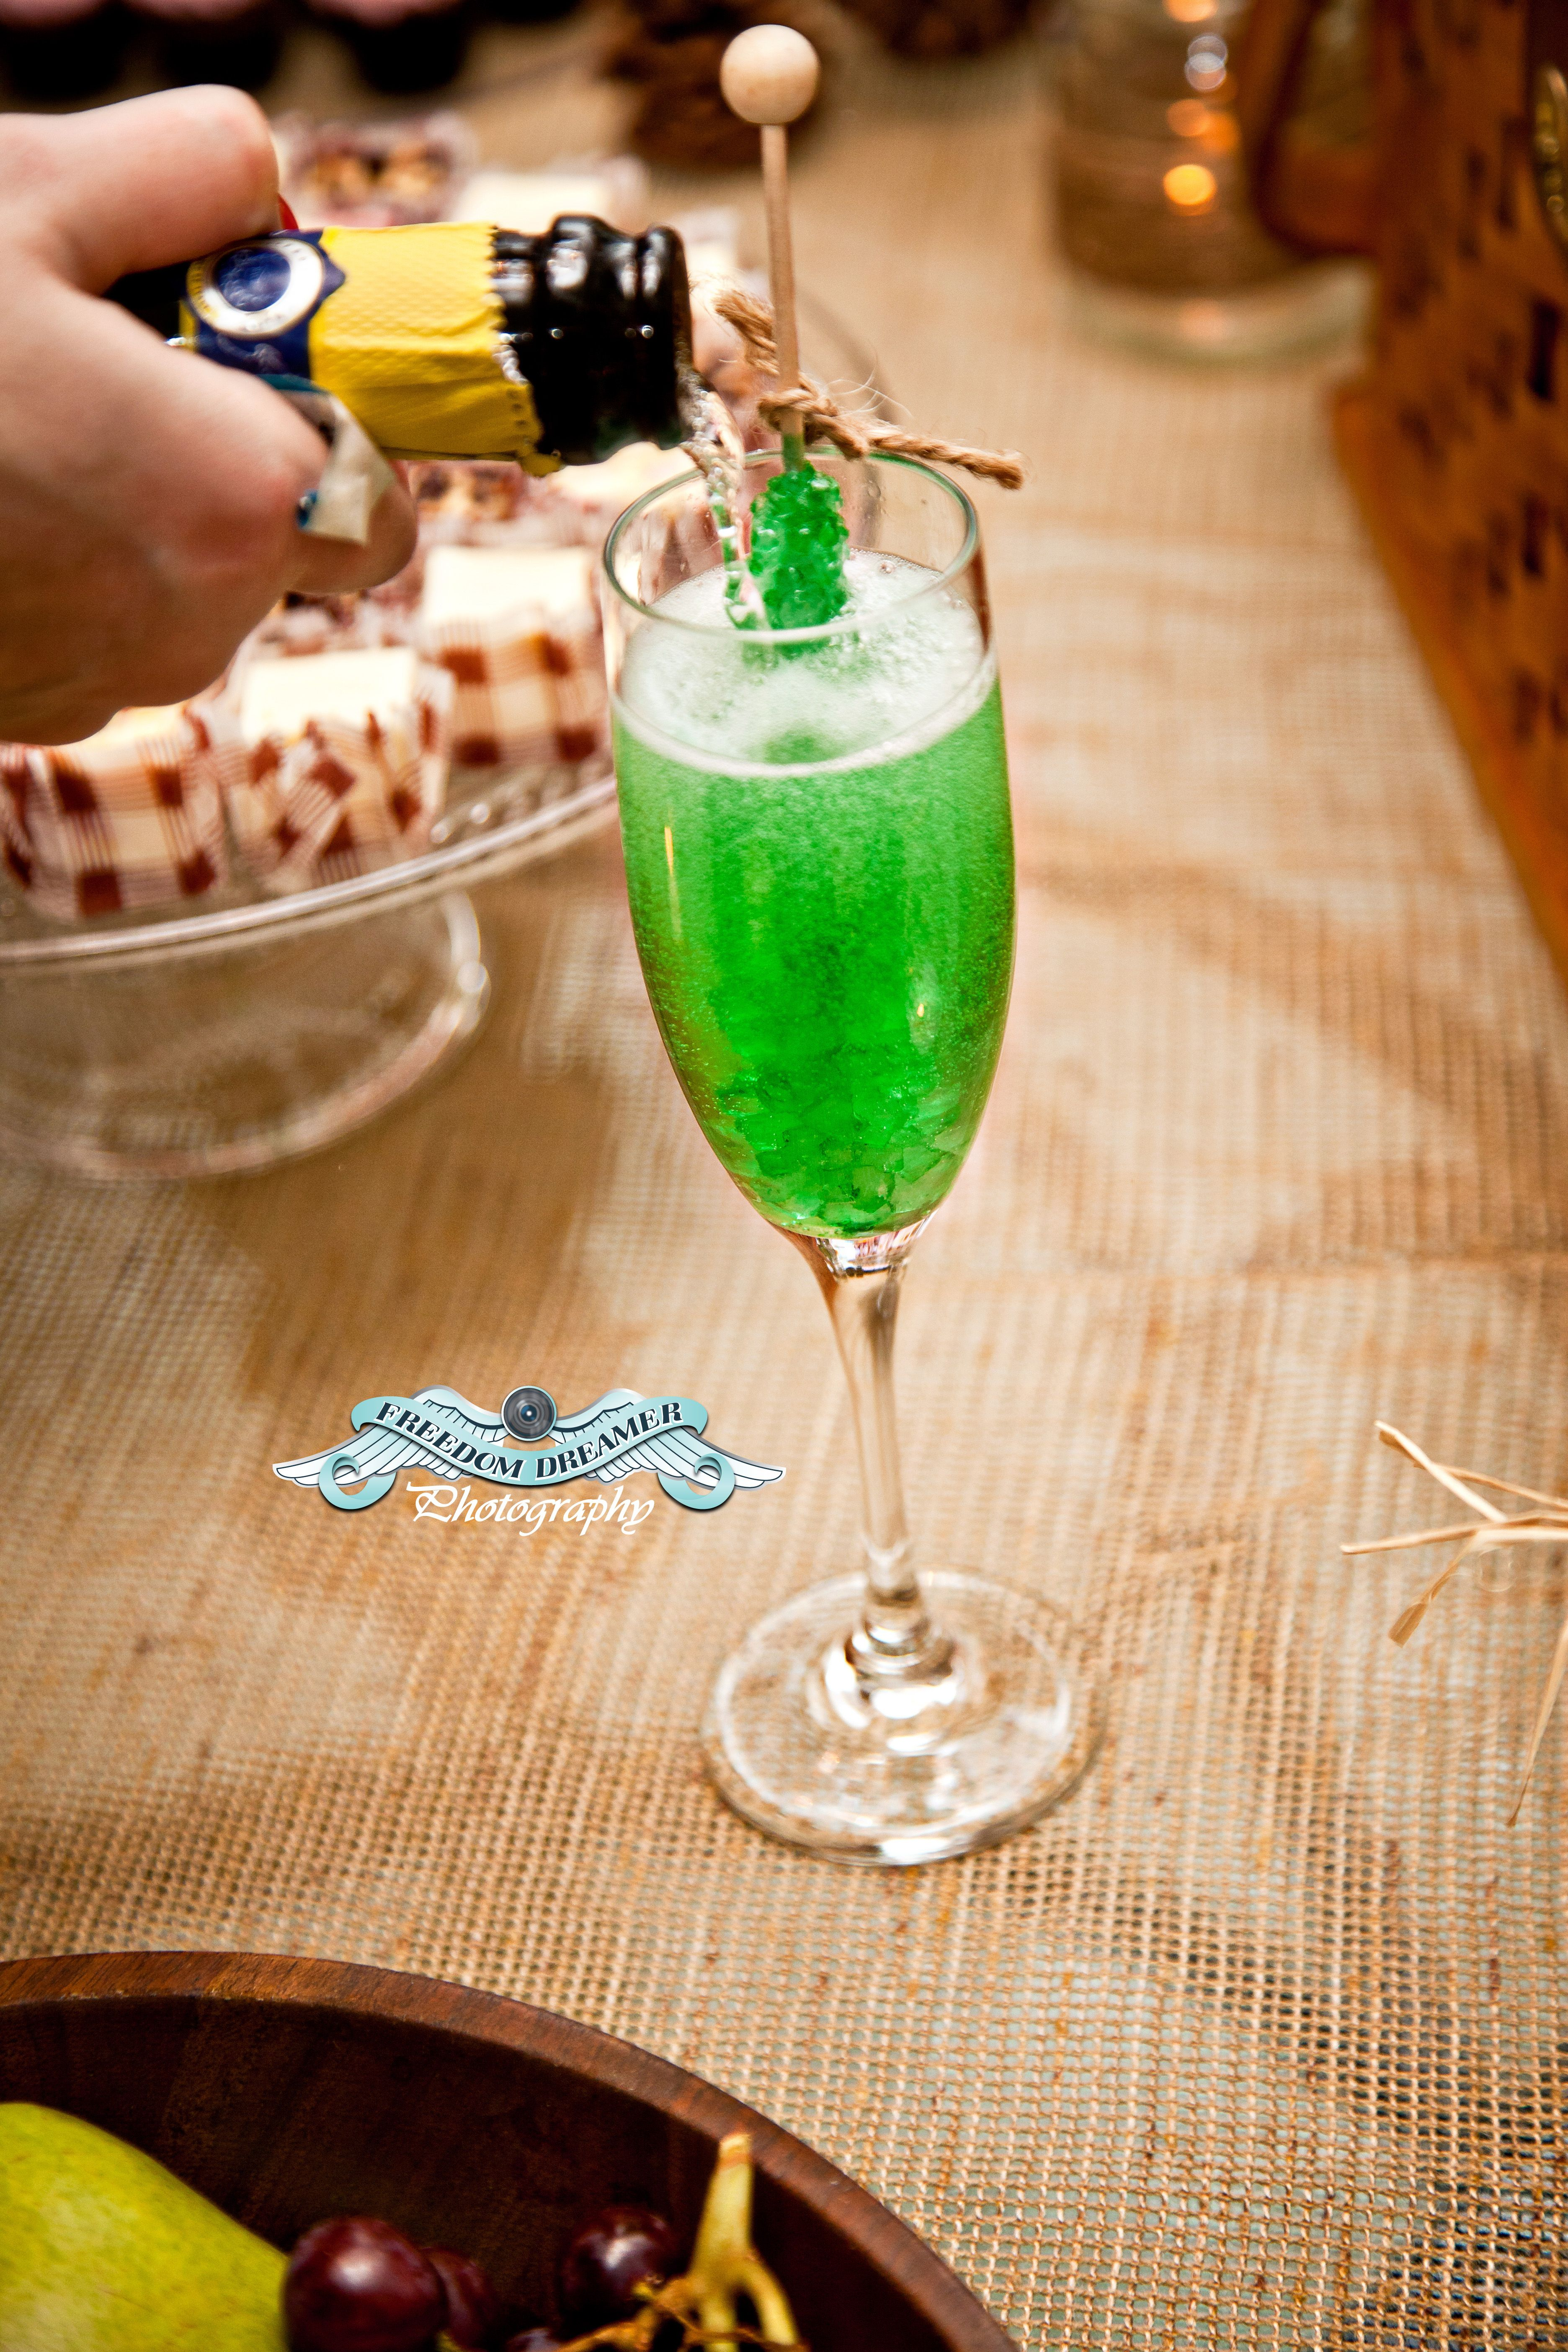 Champagne & Rock Candy Sucker By Cineca Newburn at